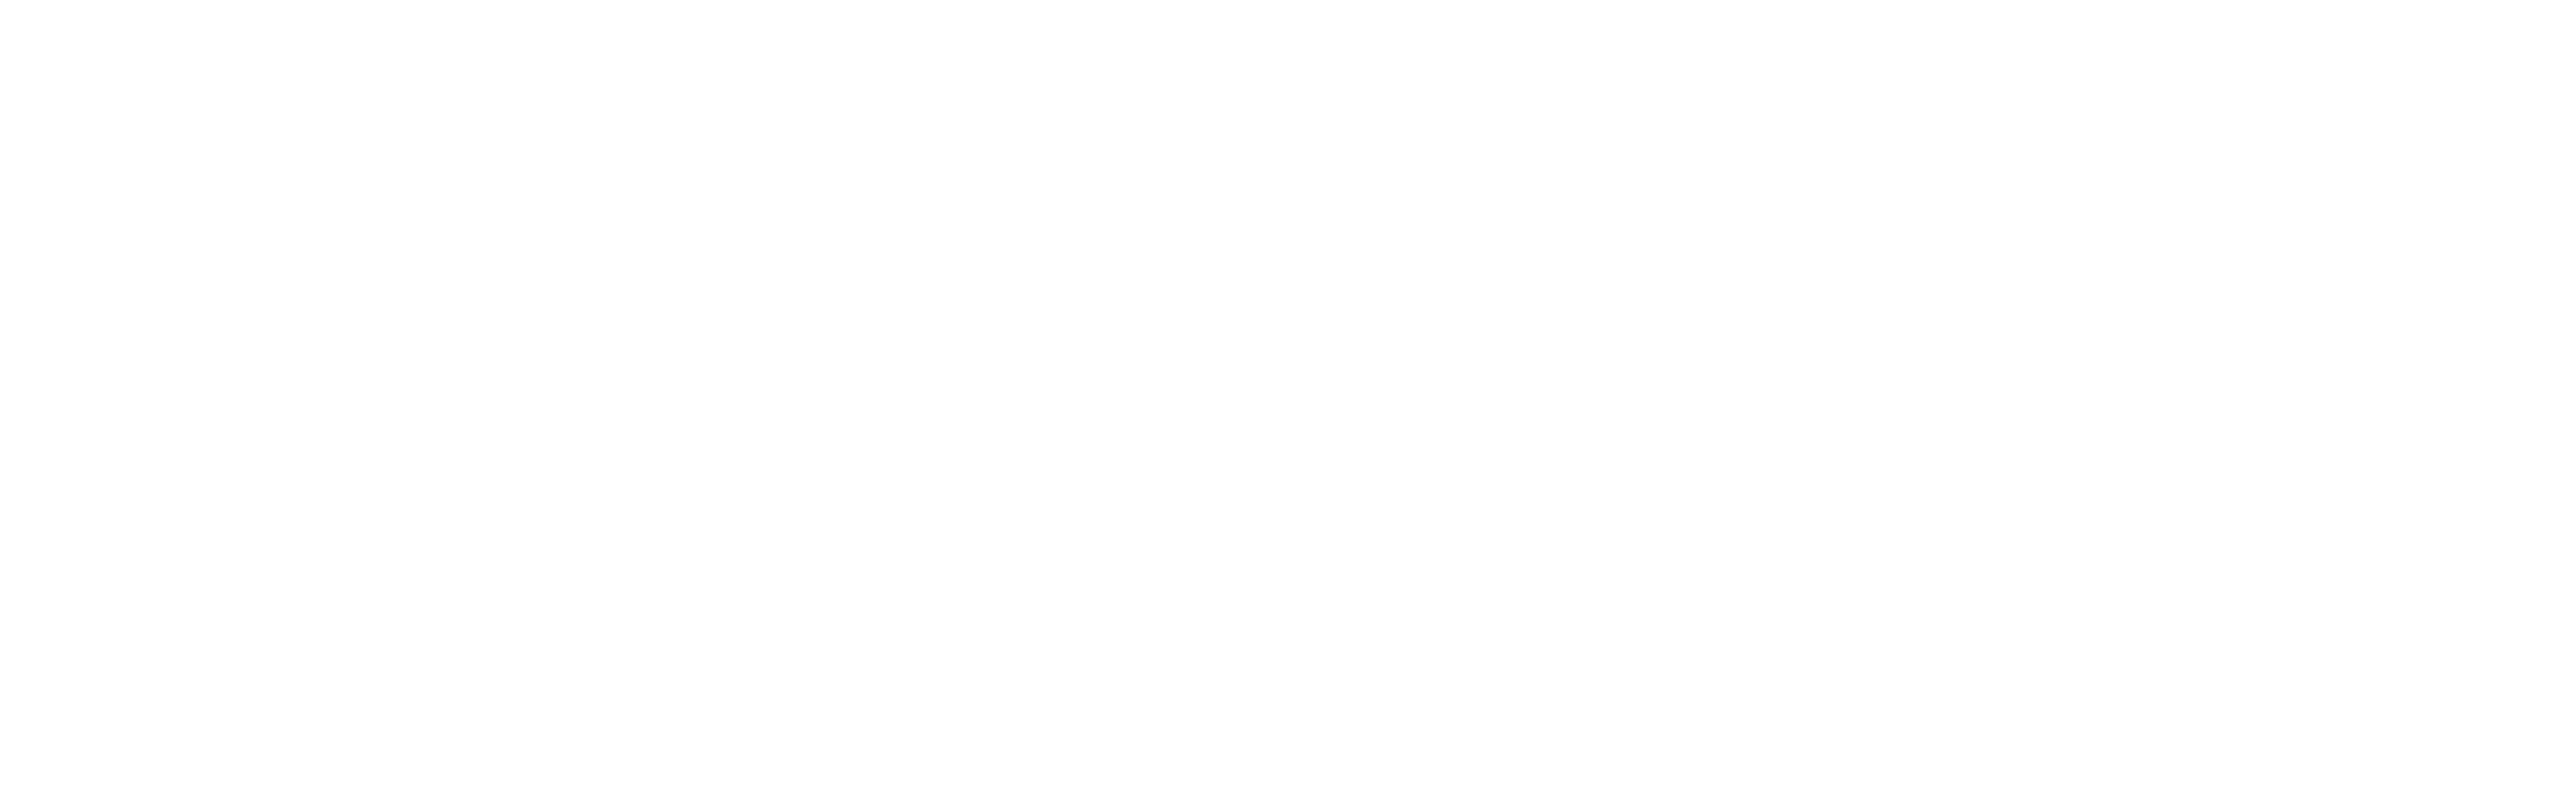 Haddonview Apartments